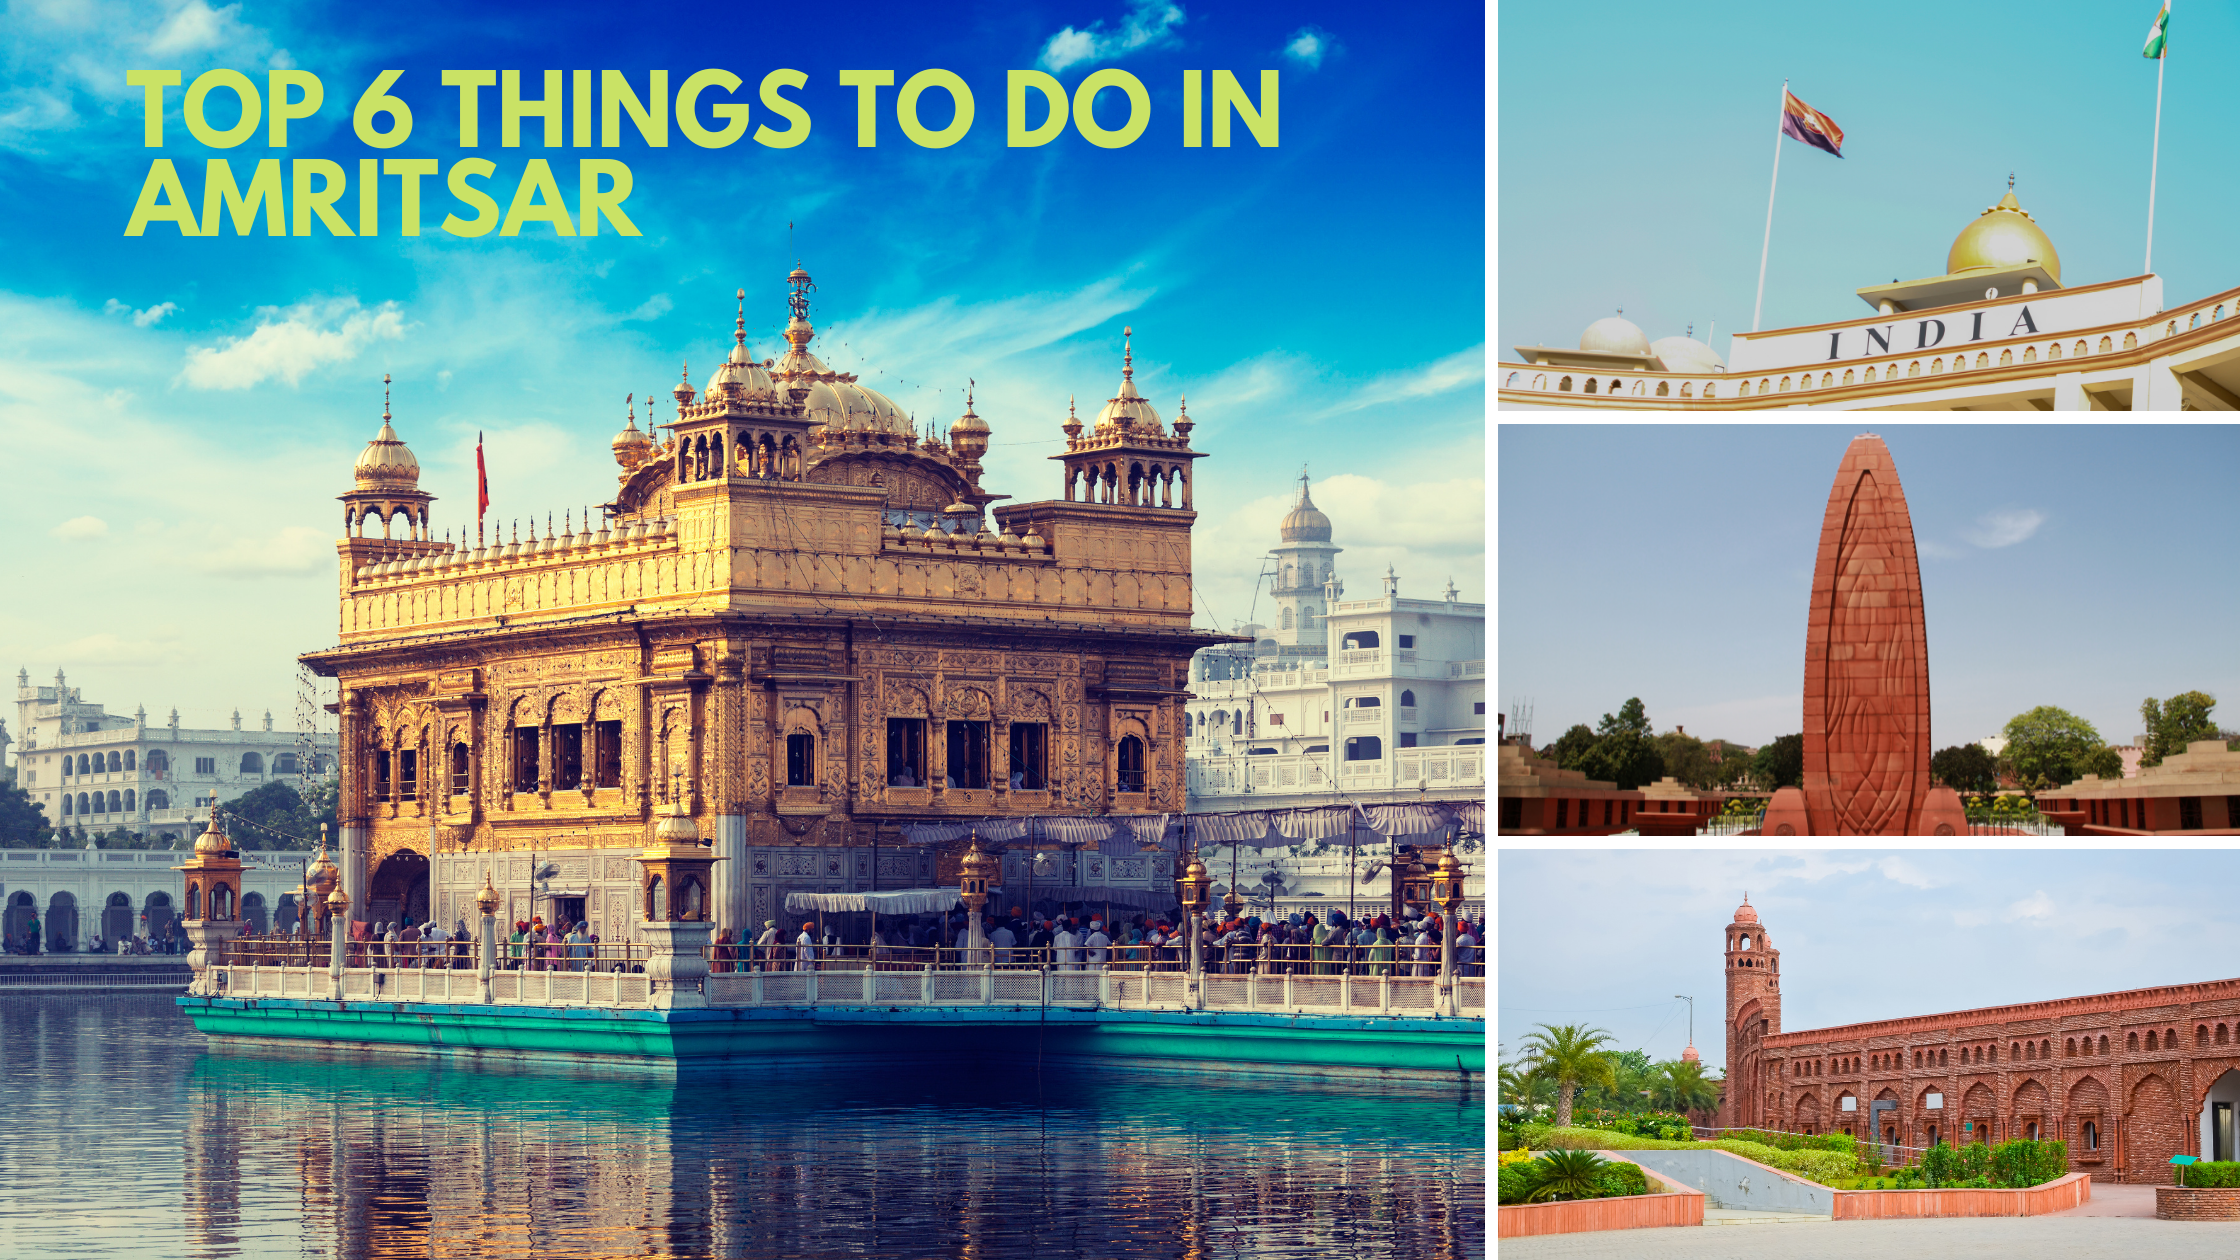 Top 6 Things to do in Amritsar